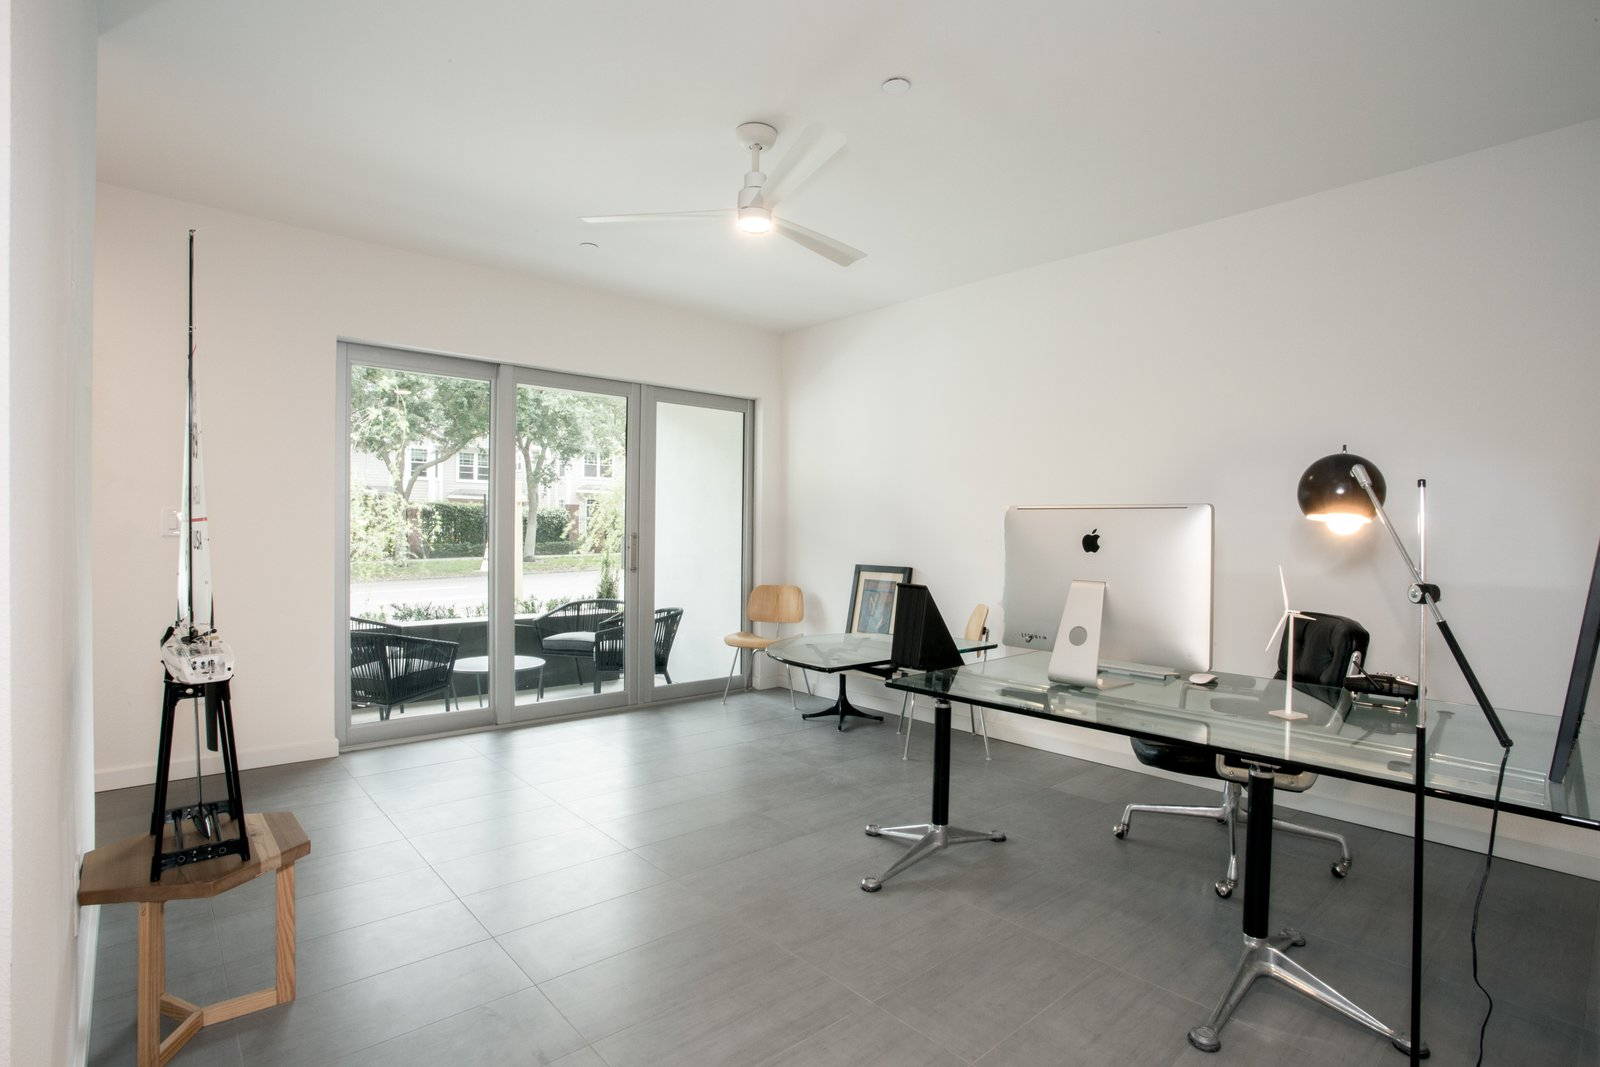 Home office and foyer.   LIV233 by Hudson Harr